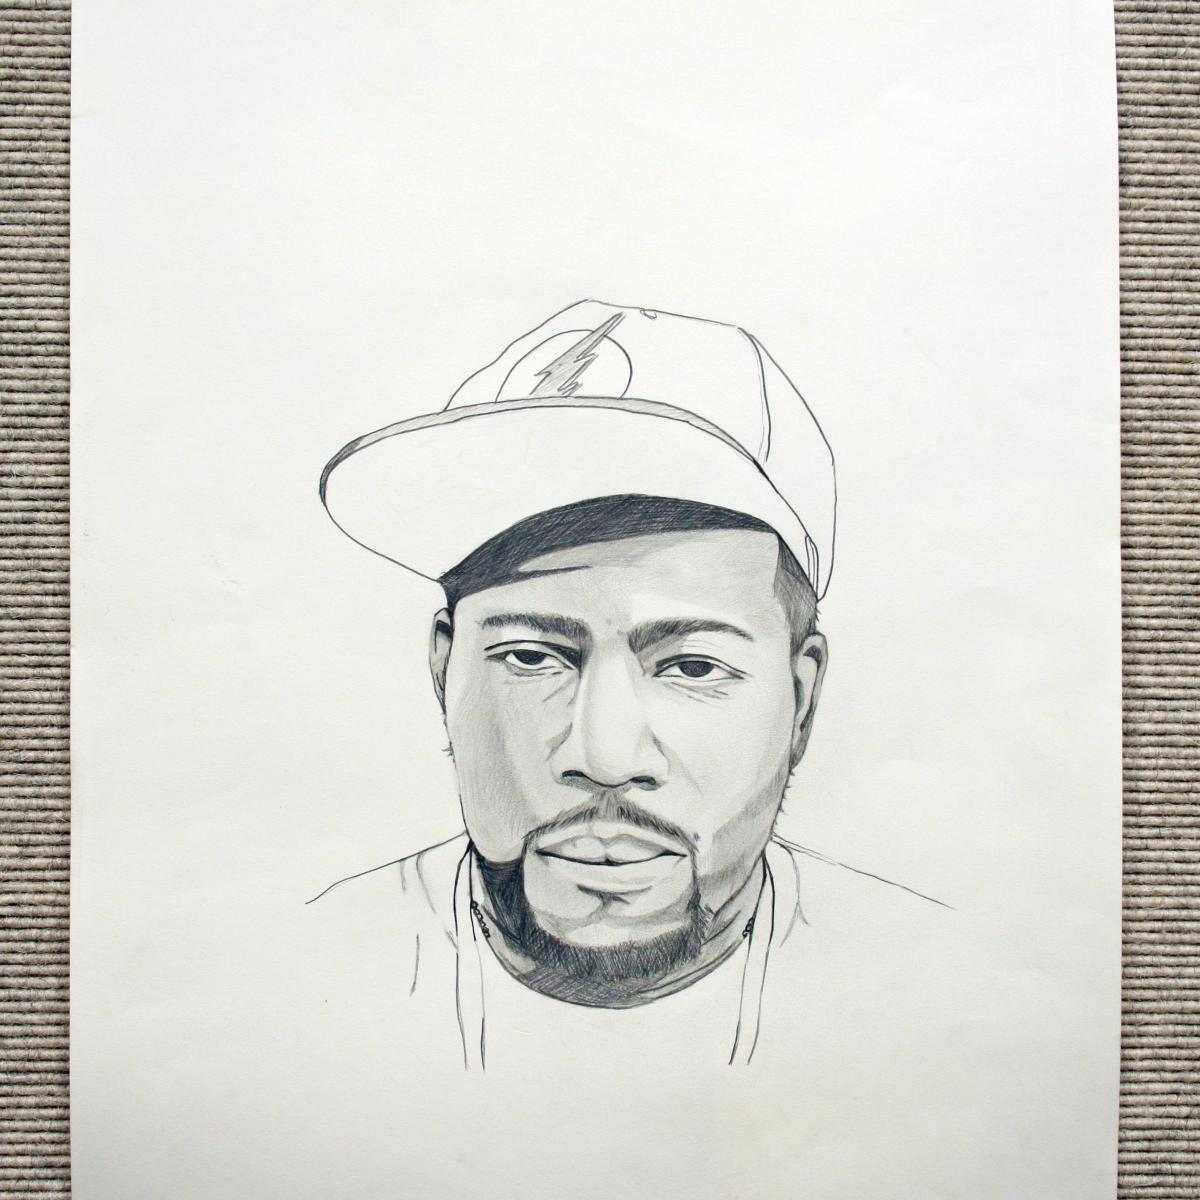 Sketch of self-portrait of Angelo Britt wearing a baseball cap.